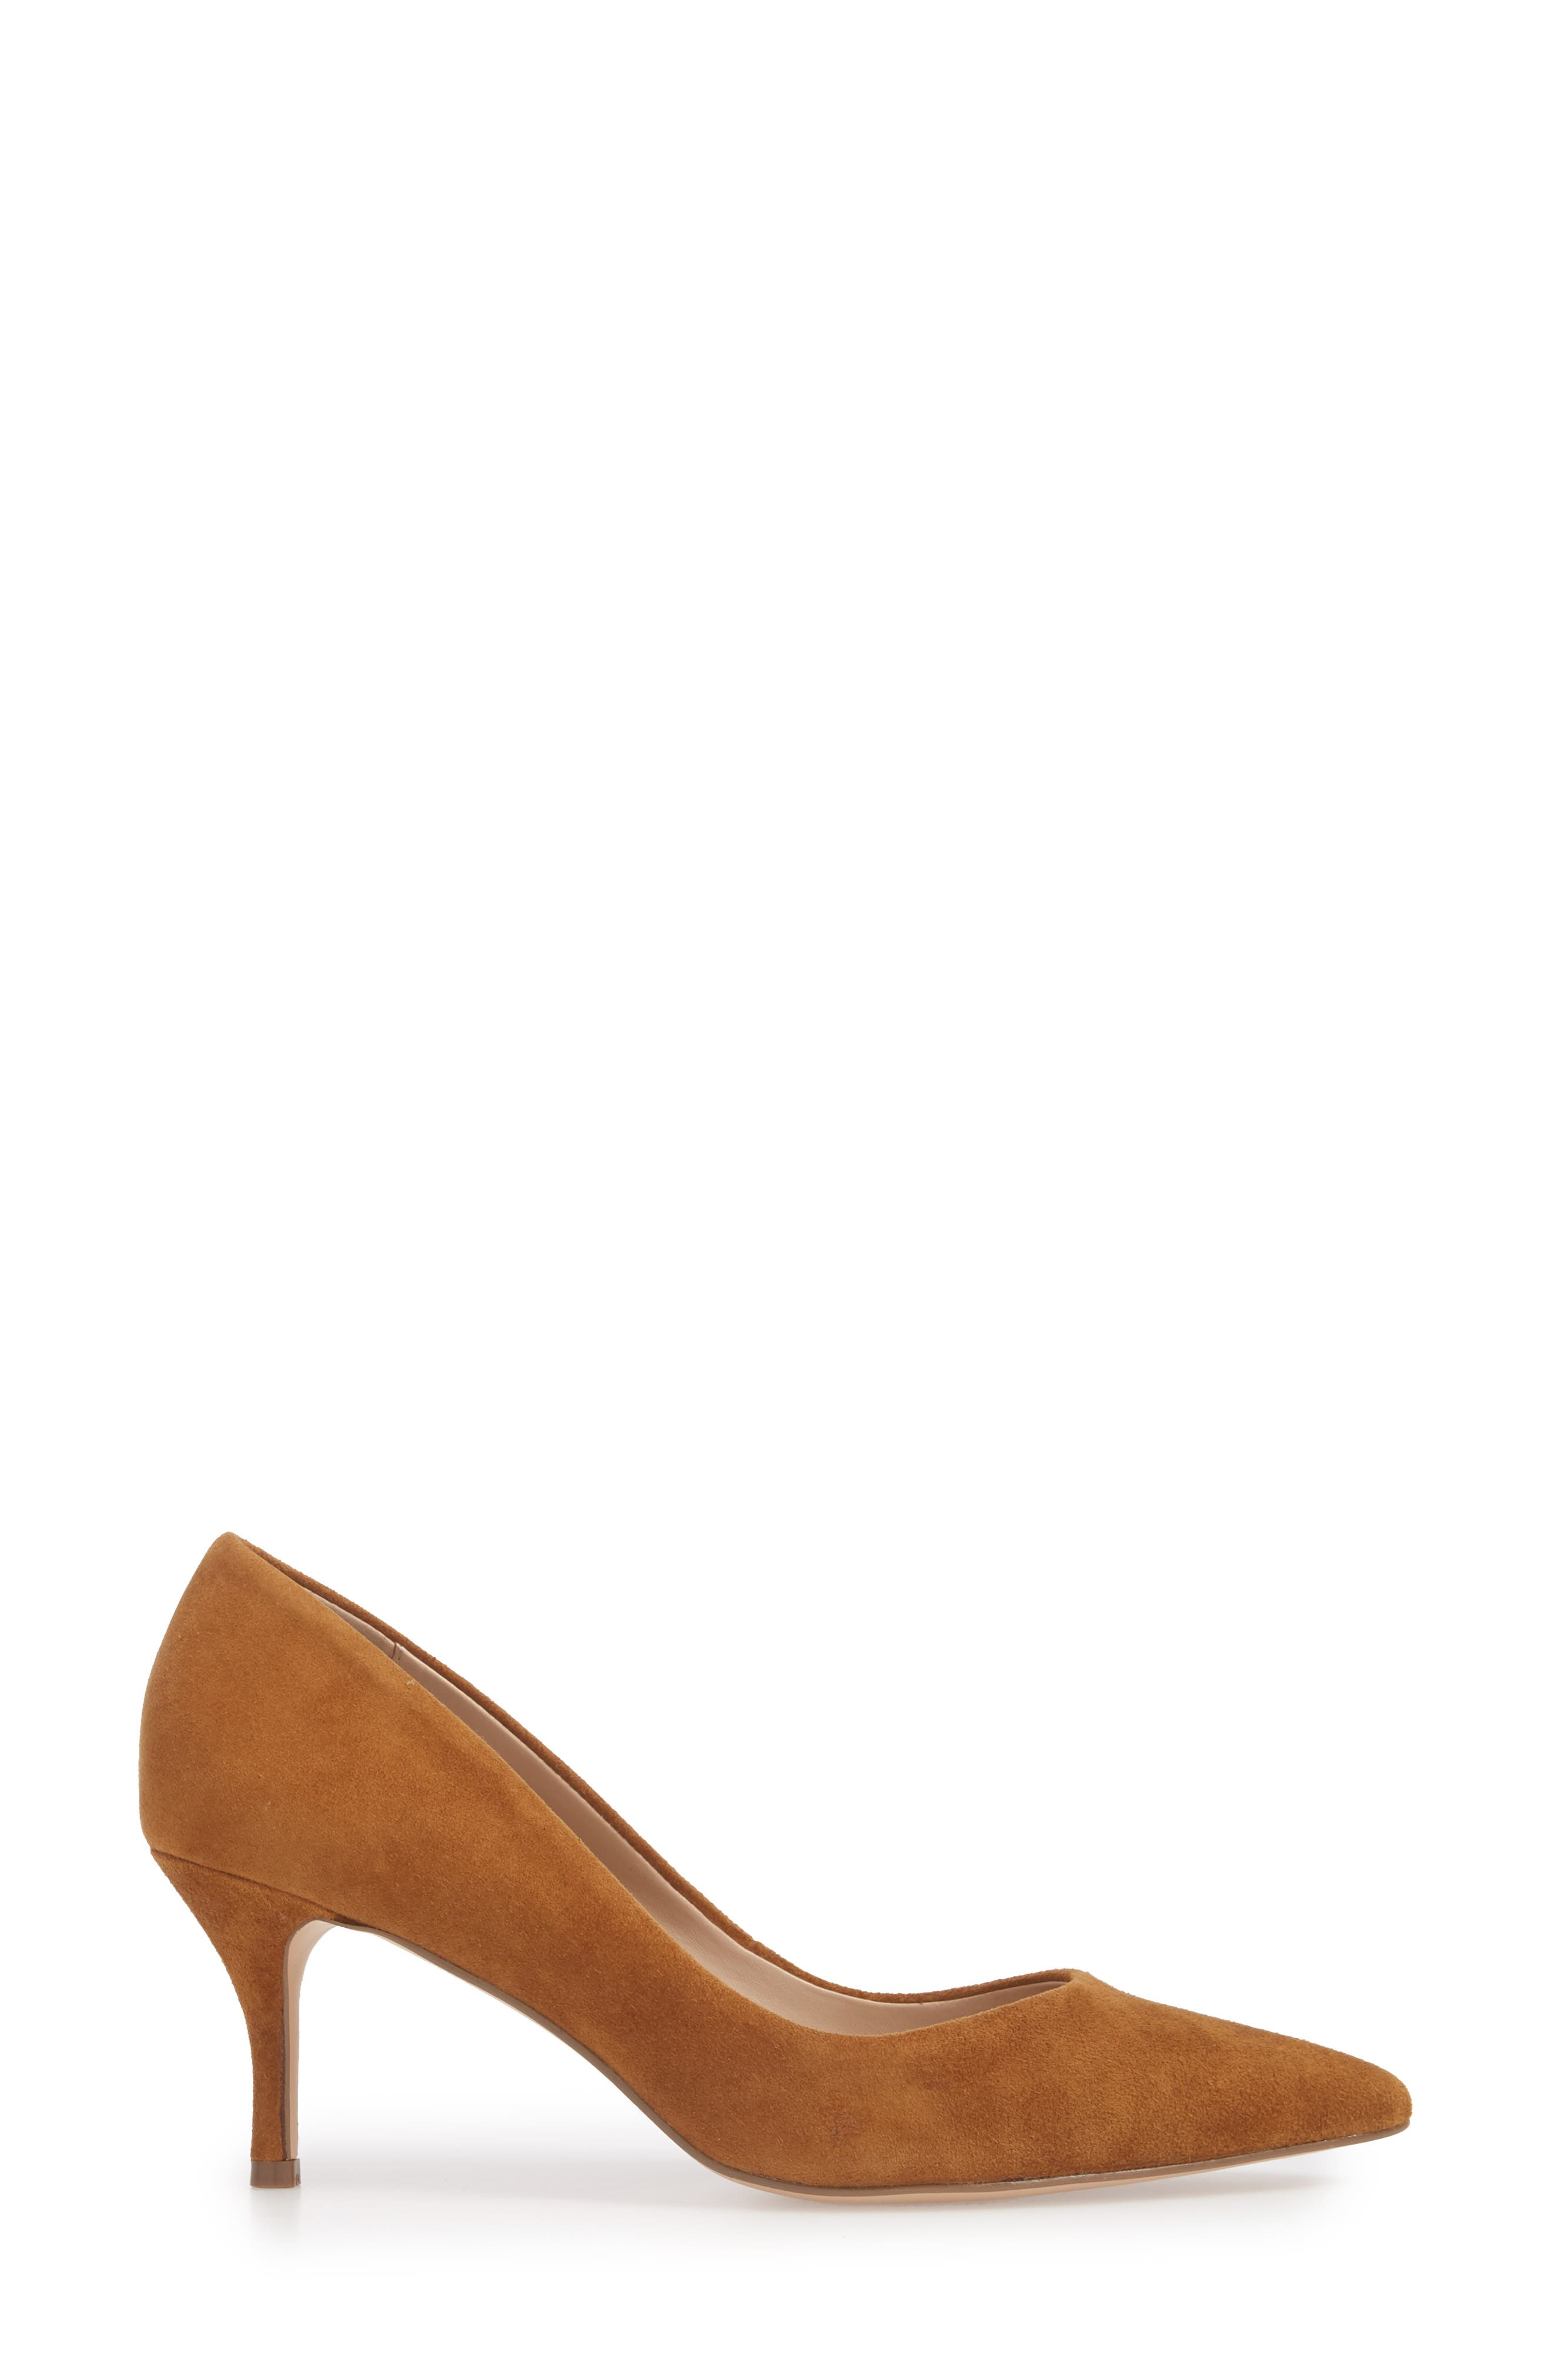 Addie Pump,                             Alternate thumbnail 3, color,                             AMBER SUEDE